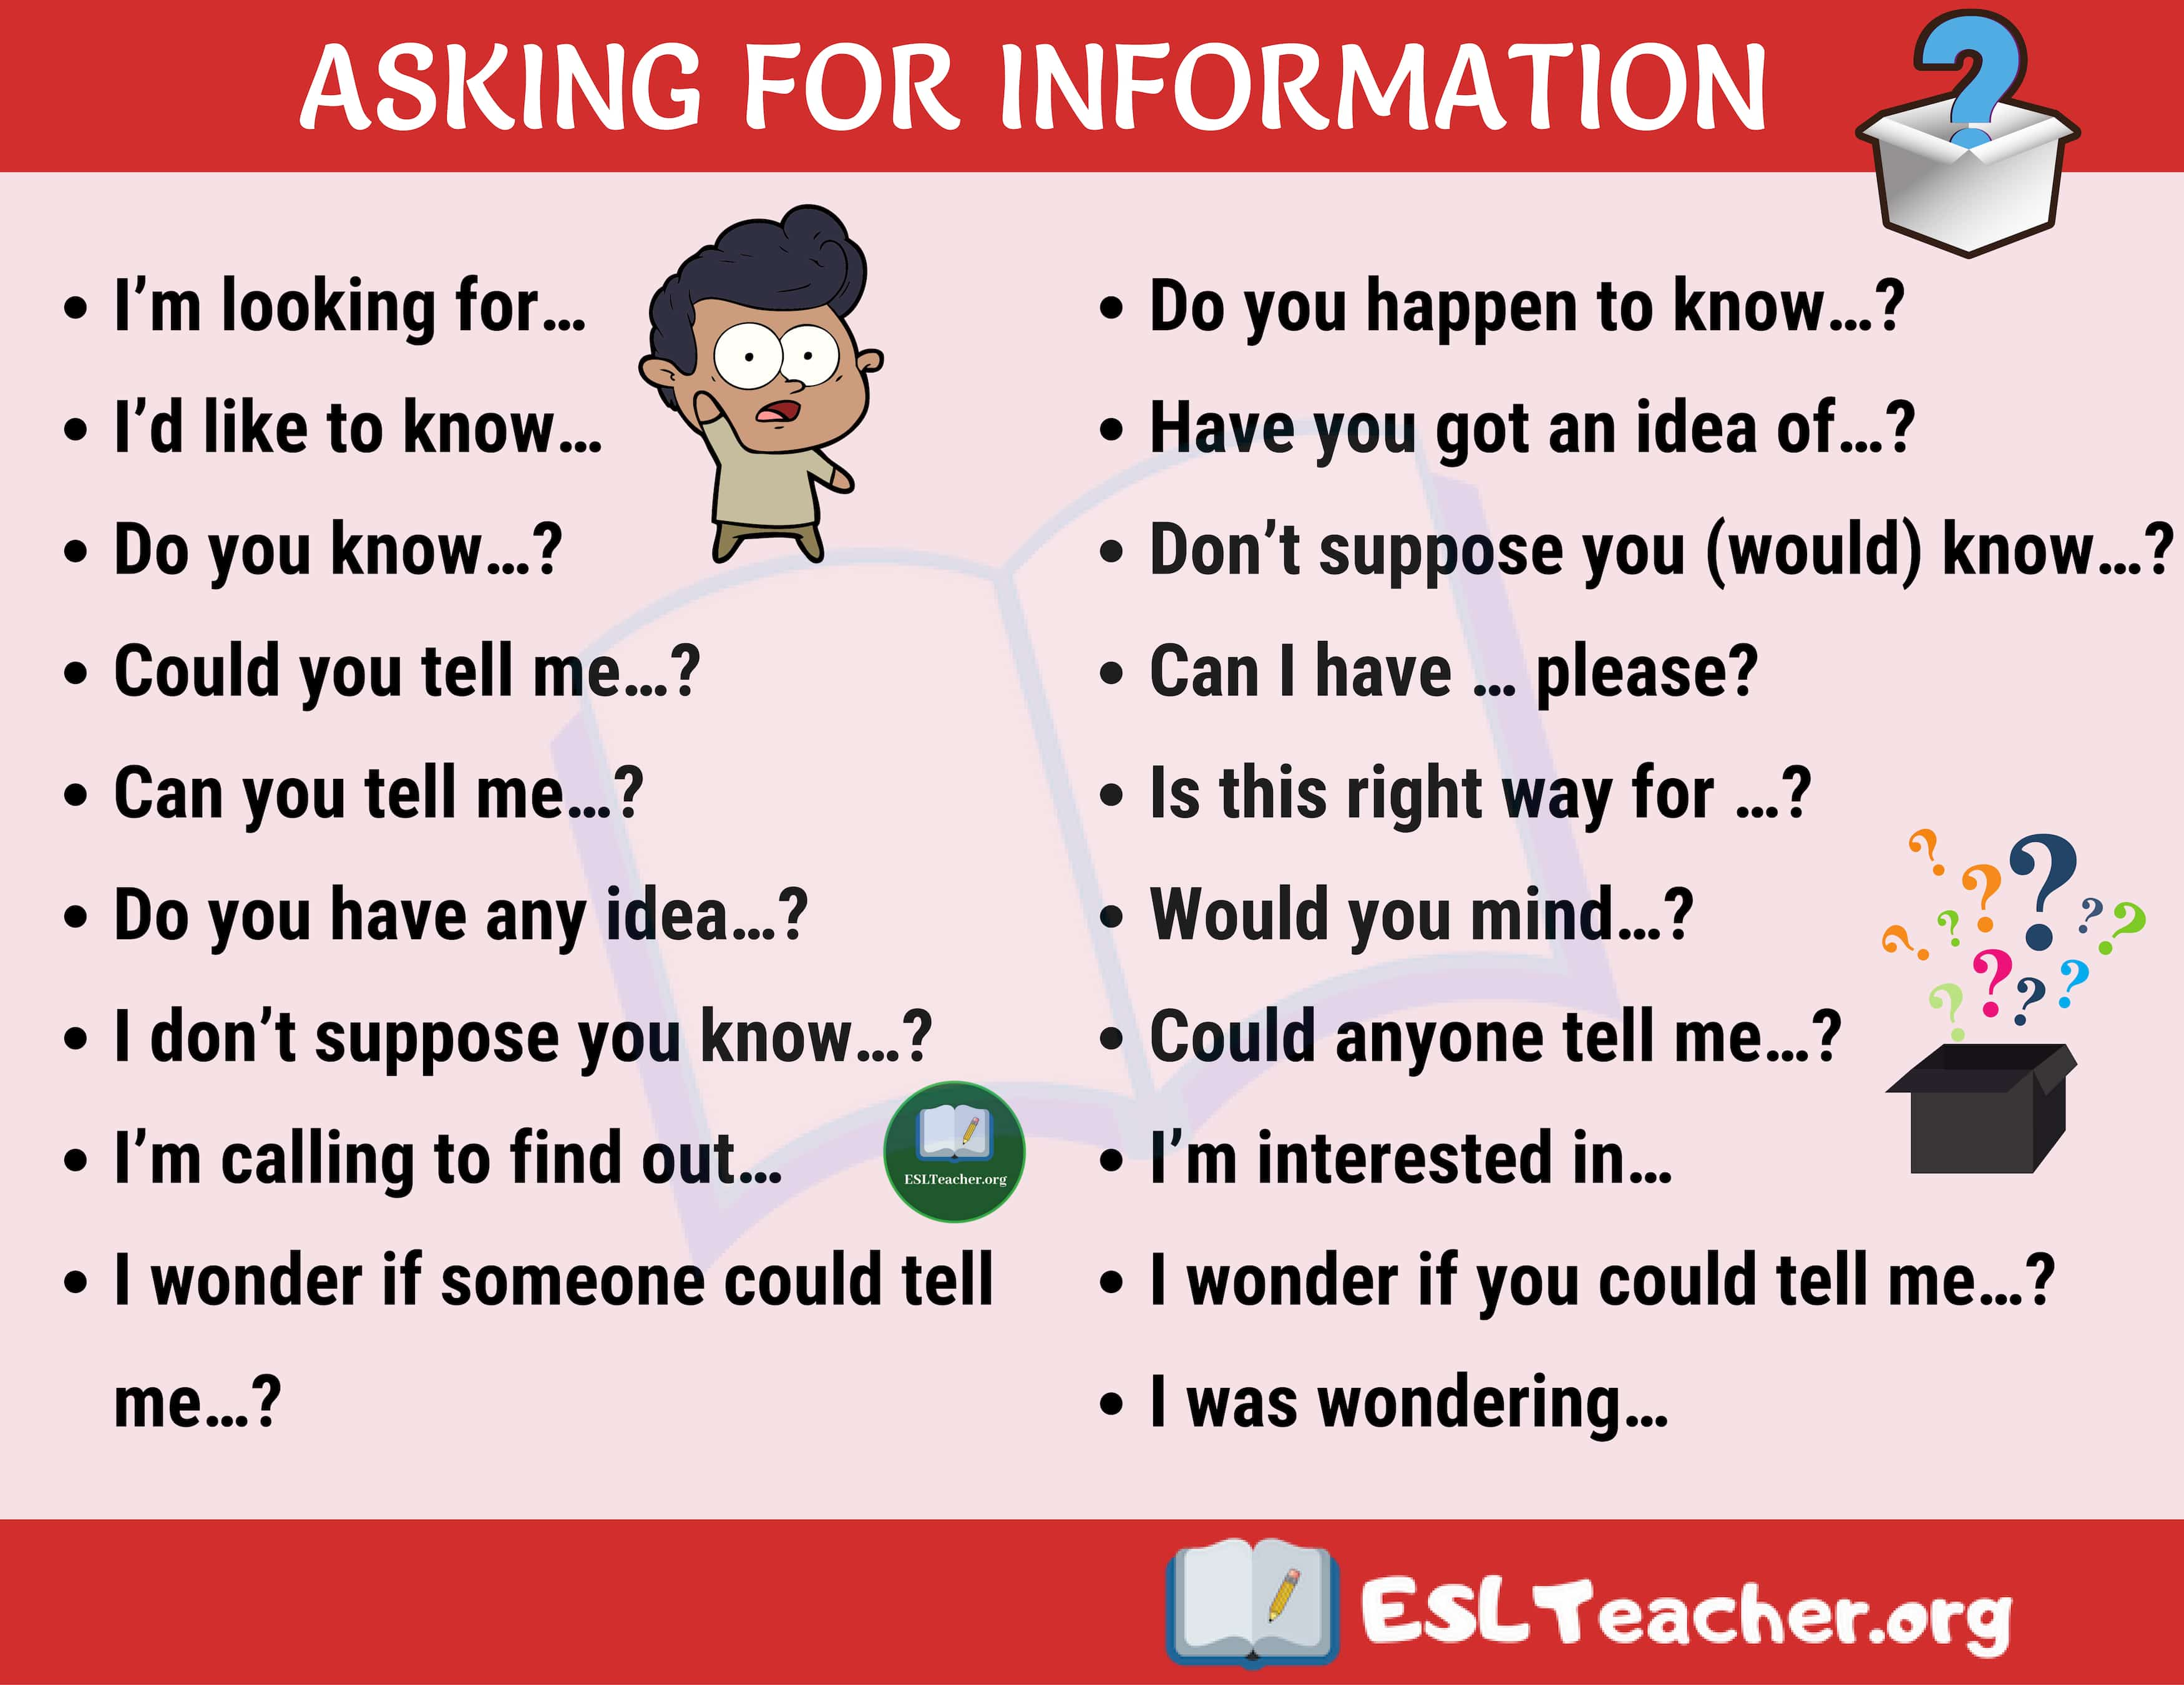 Asking for Information